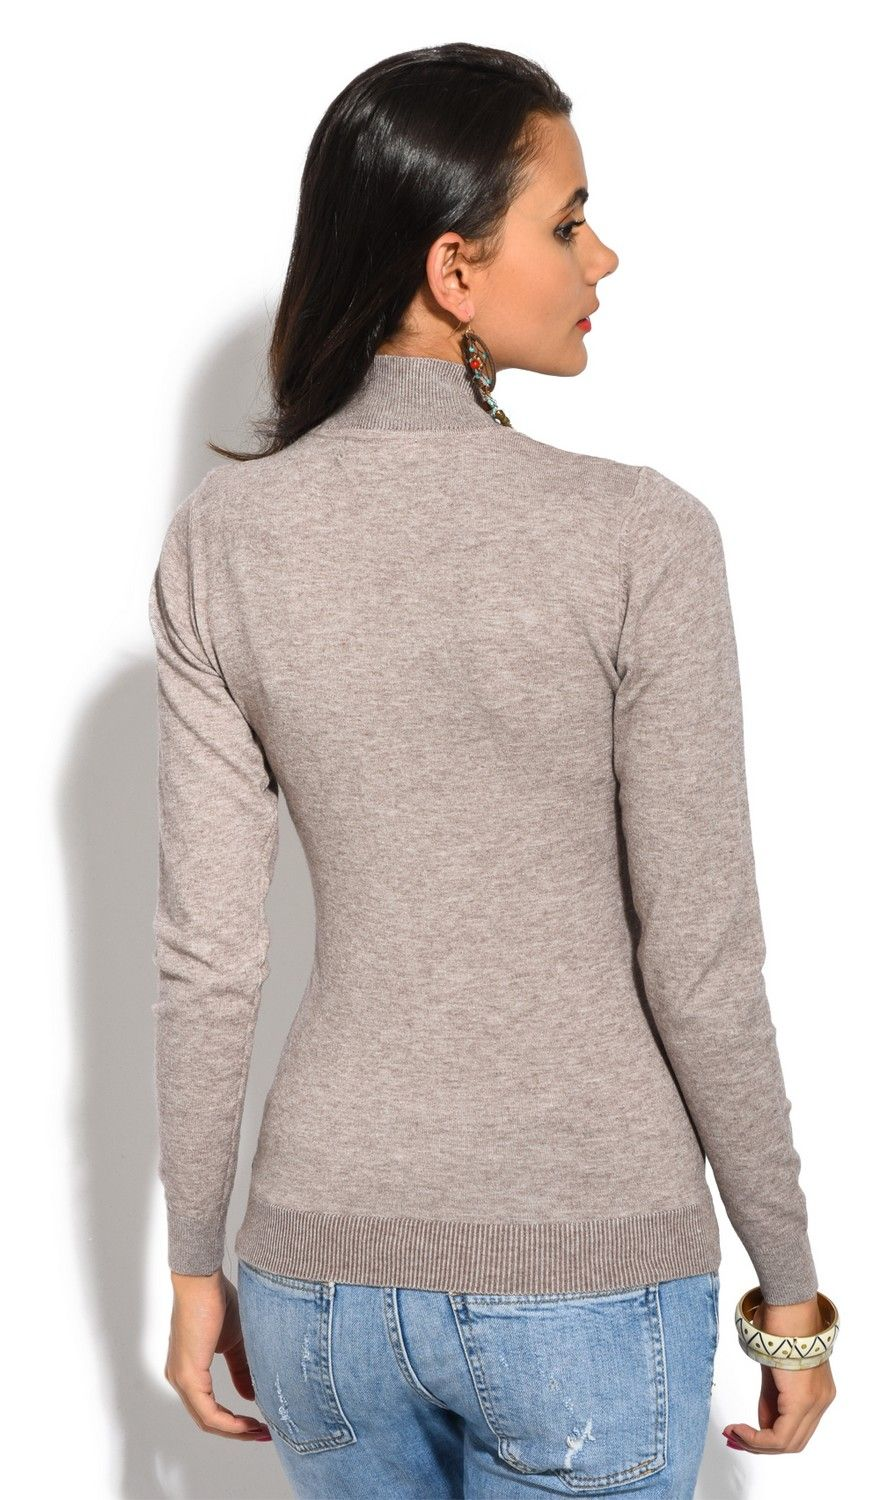 William De Faye Funnel Neck Long Sleeve Sweater in Beige